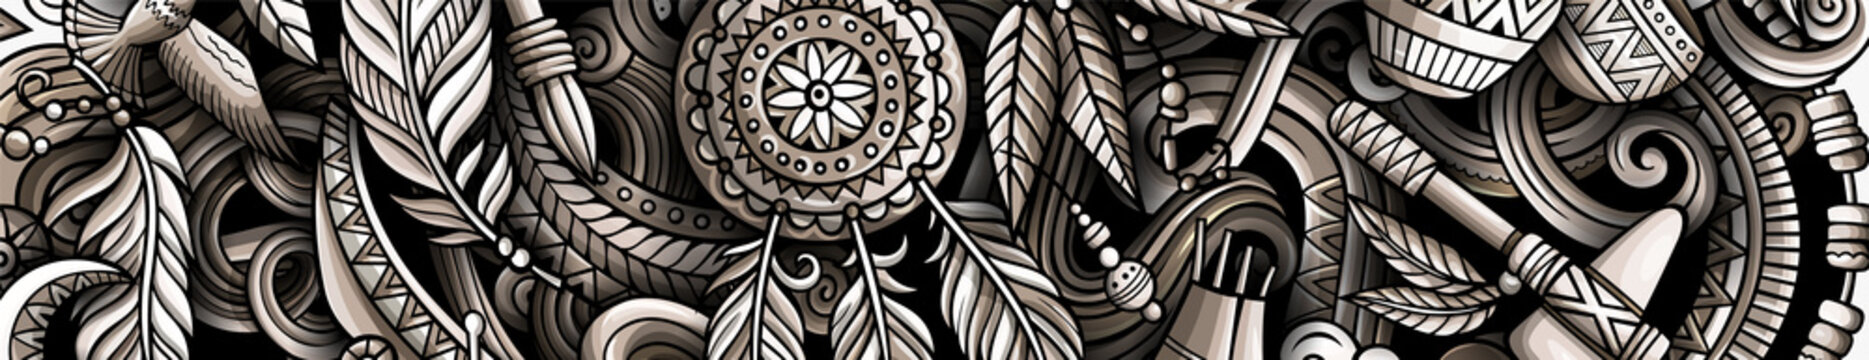 Native American hand drawn doodle banner. Cartoon vector detailed flyer. Illustration with ethnic objects and symbols. Graphics horizontal background